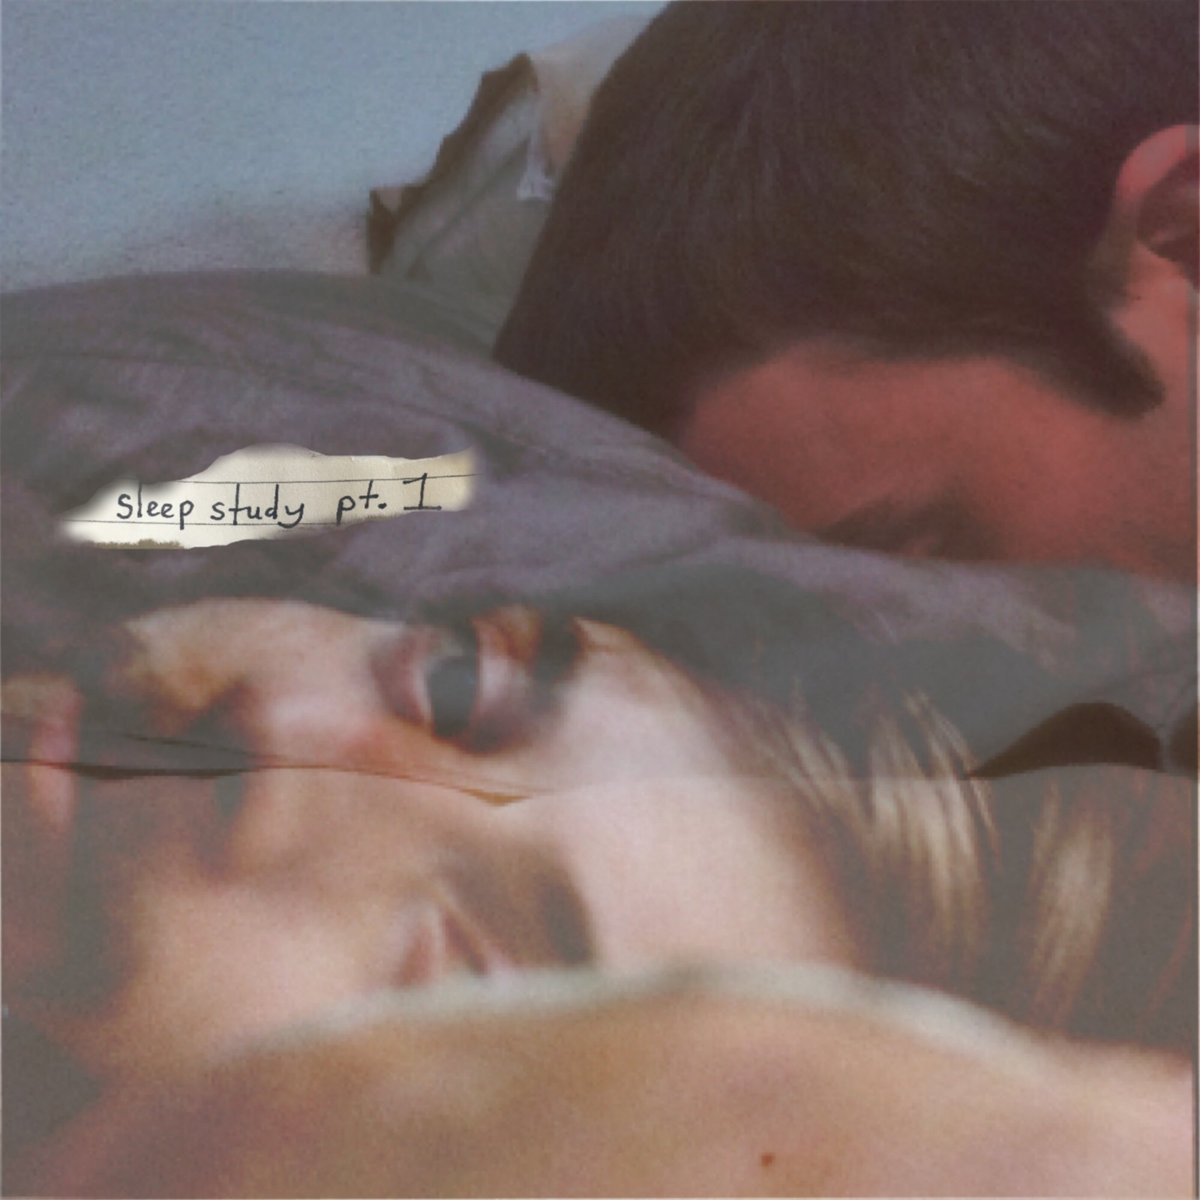 "Sleep Study, Pt. 1 out now - ""Mixing the heat of life with heartfelt sound, Glenn Echo is a fiery newcomer you don't want to miss."" - Atwood Magazine"